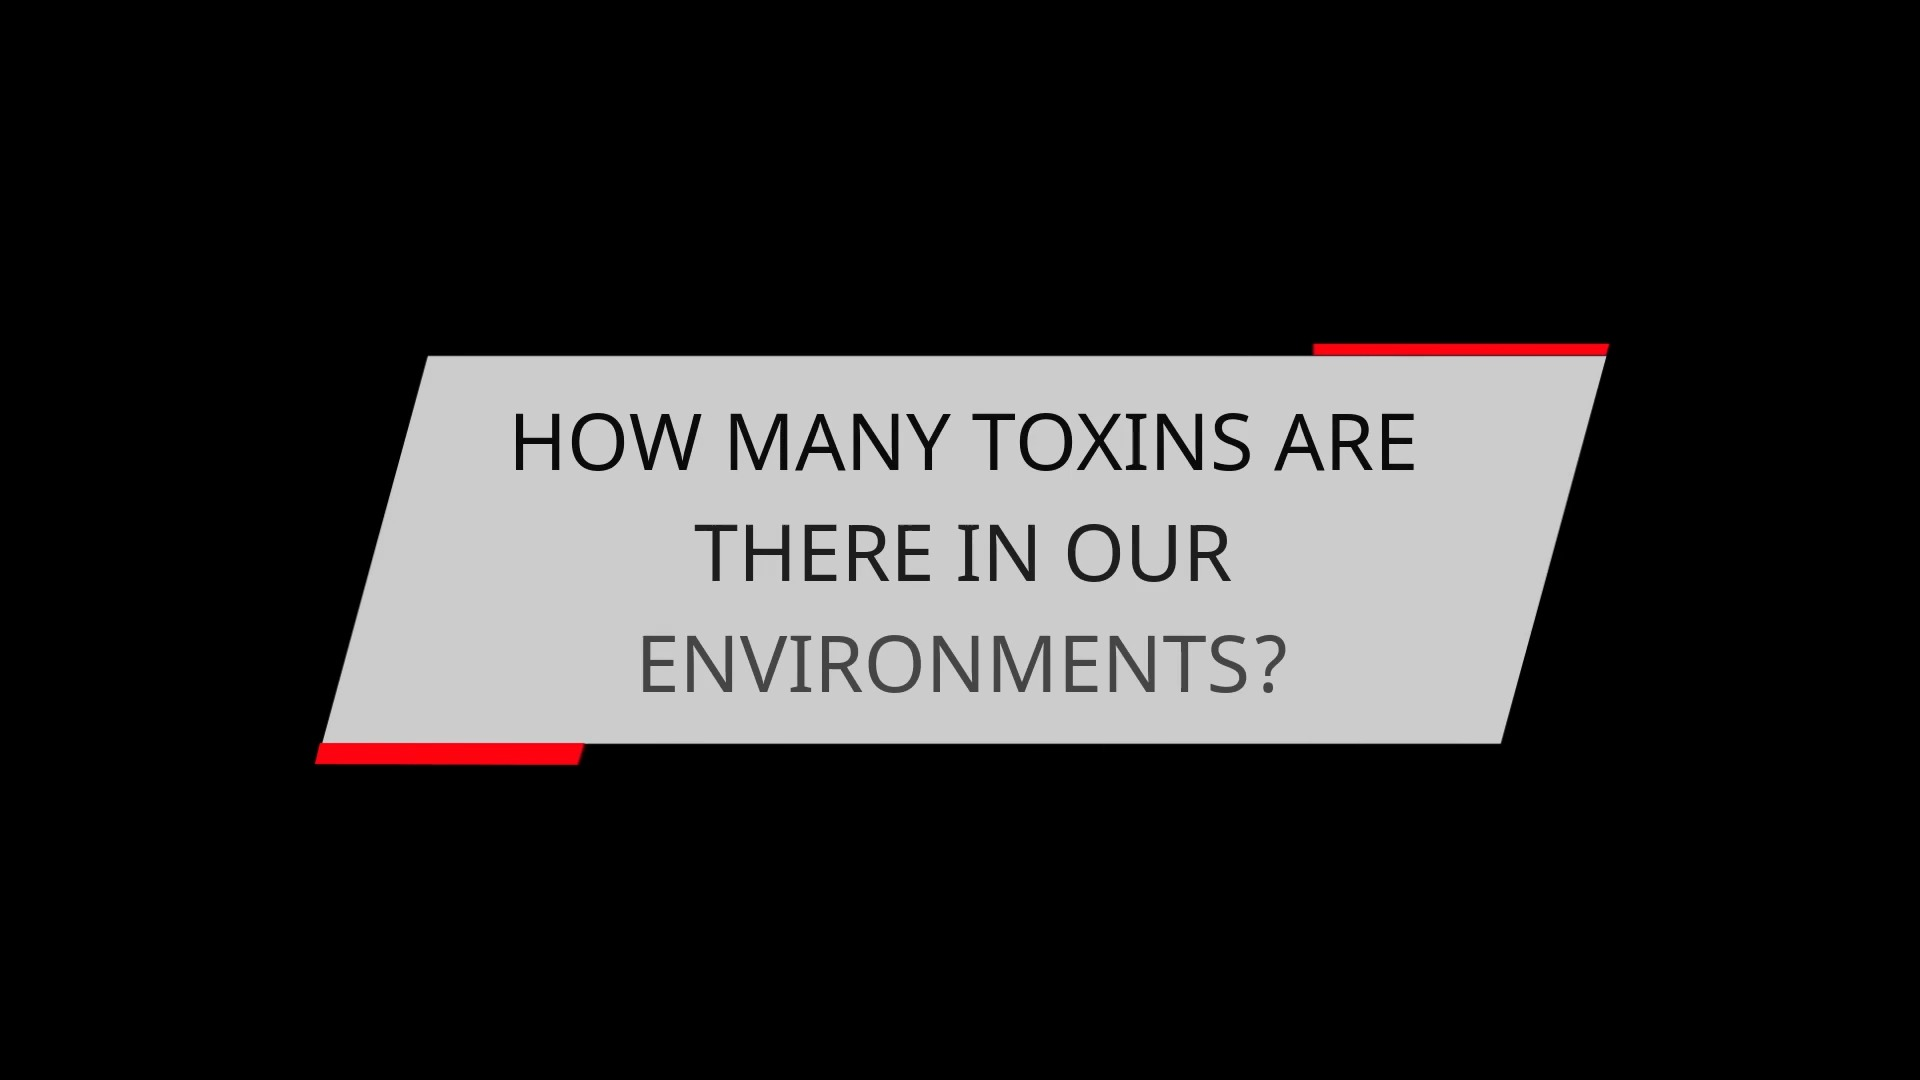 HOW MANY TOXINS ARE THERE IN OUR ENVIRONMENTS